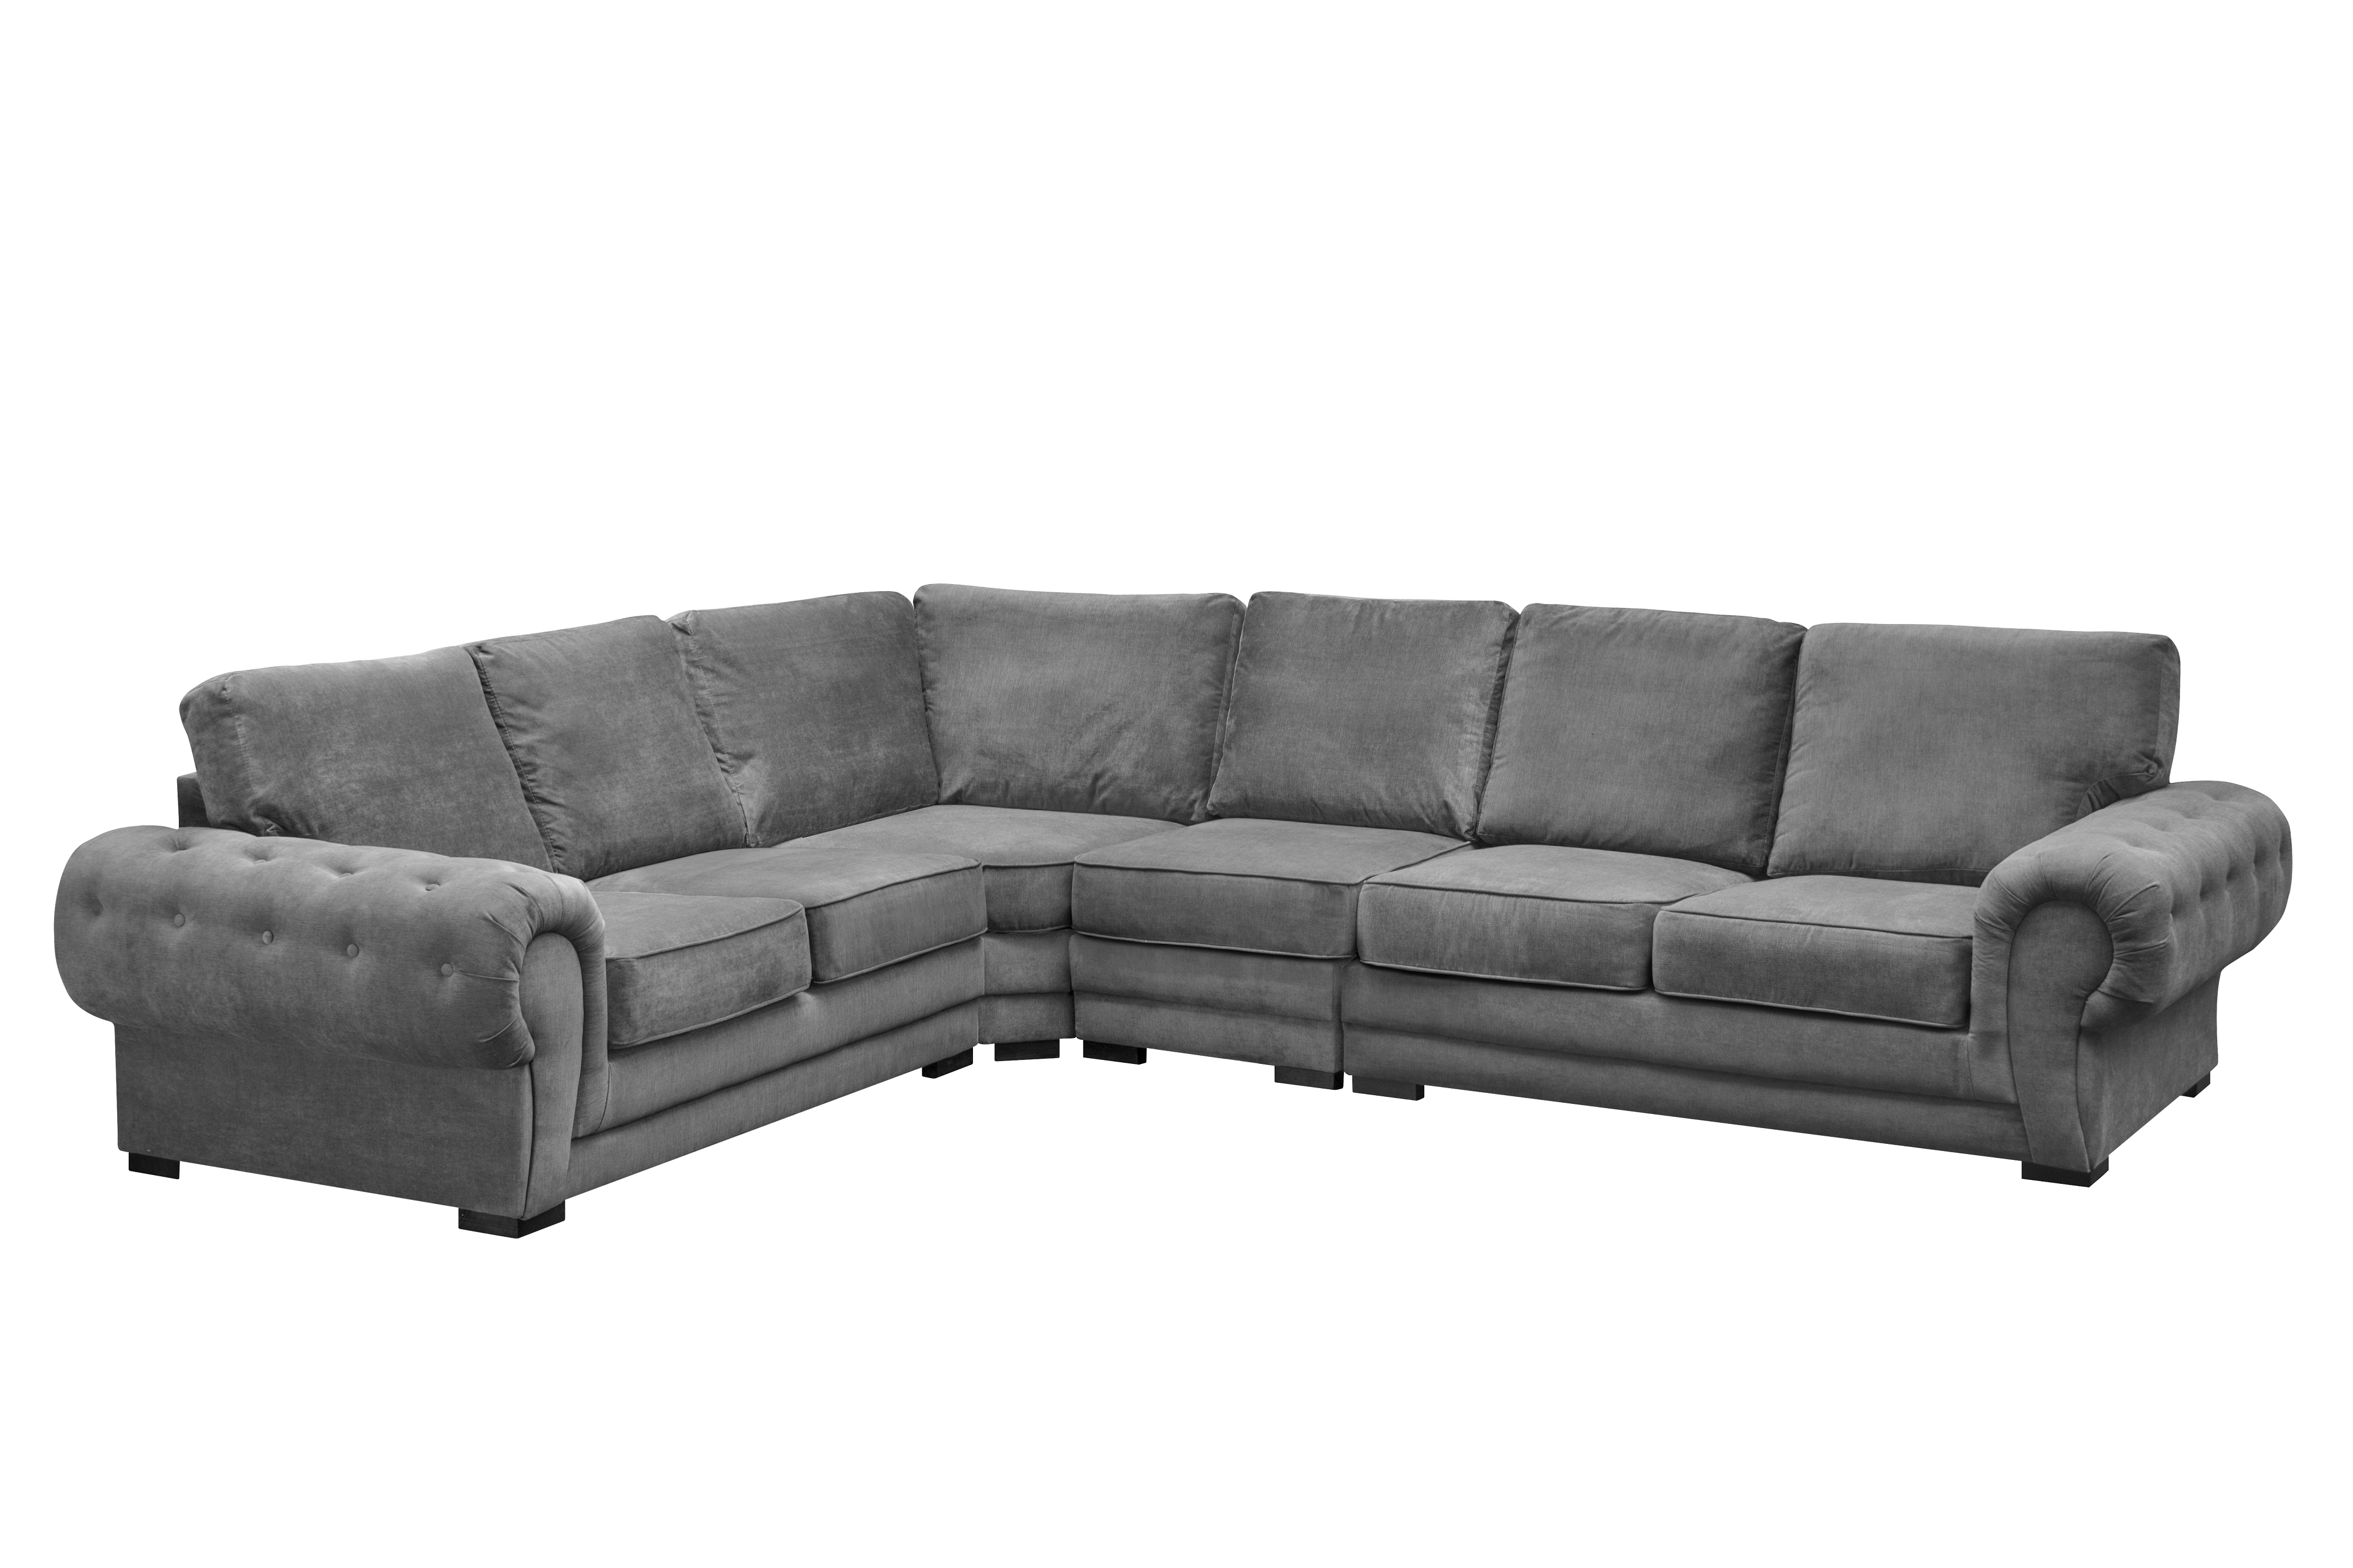 Verona 3C2 Corner Sofa With Footstool – PF Furniture